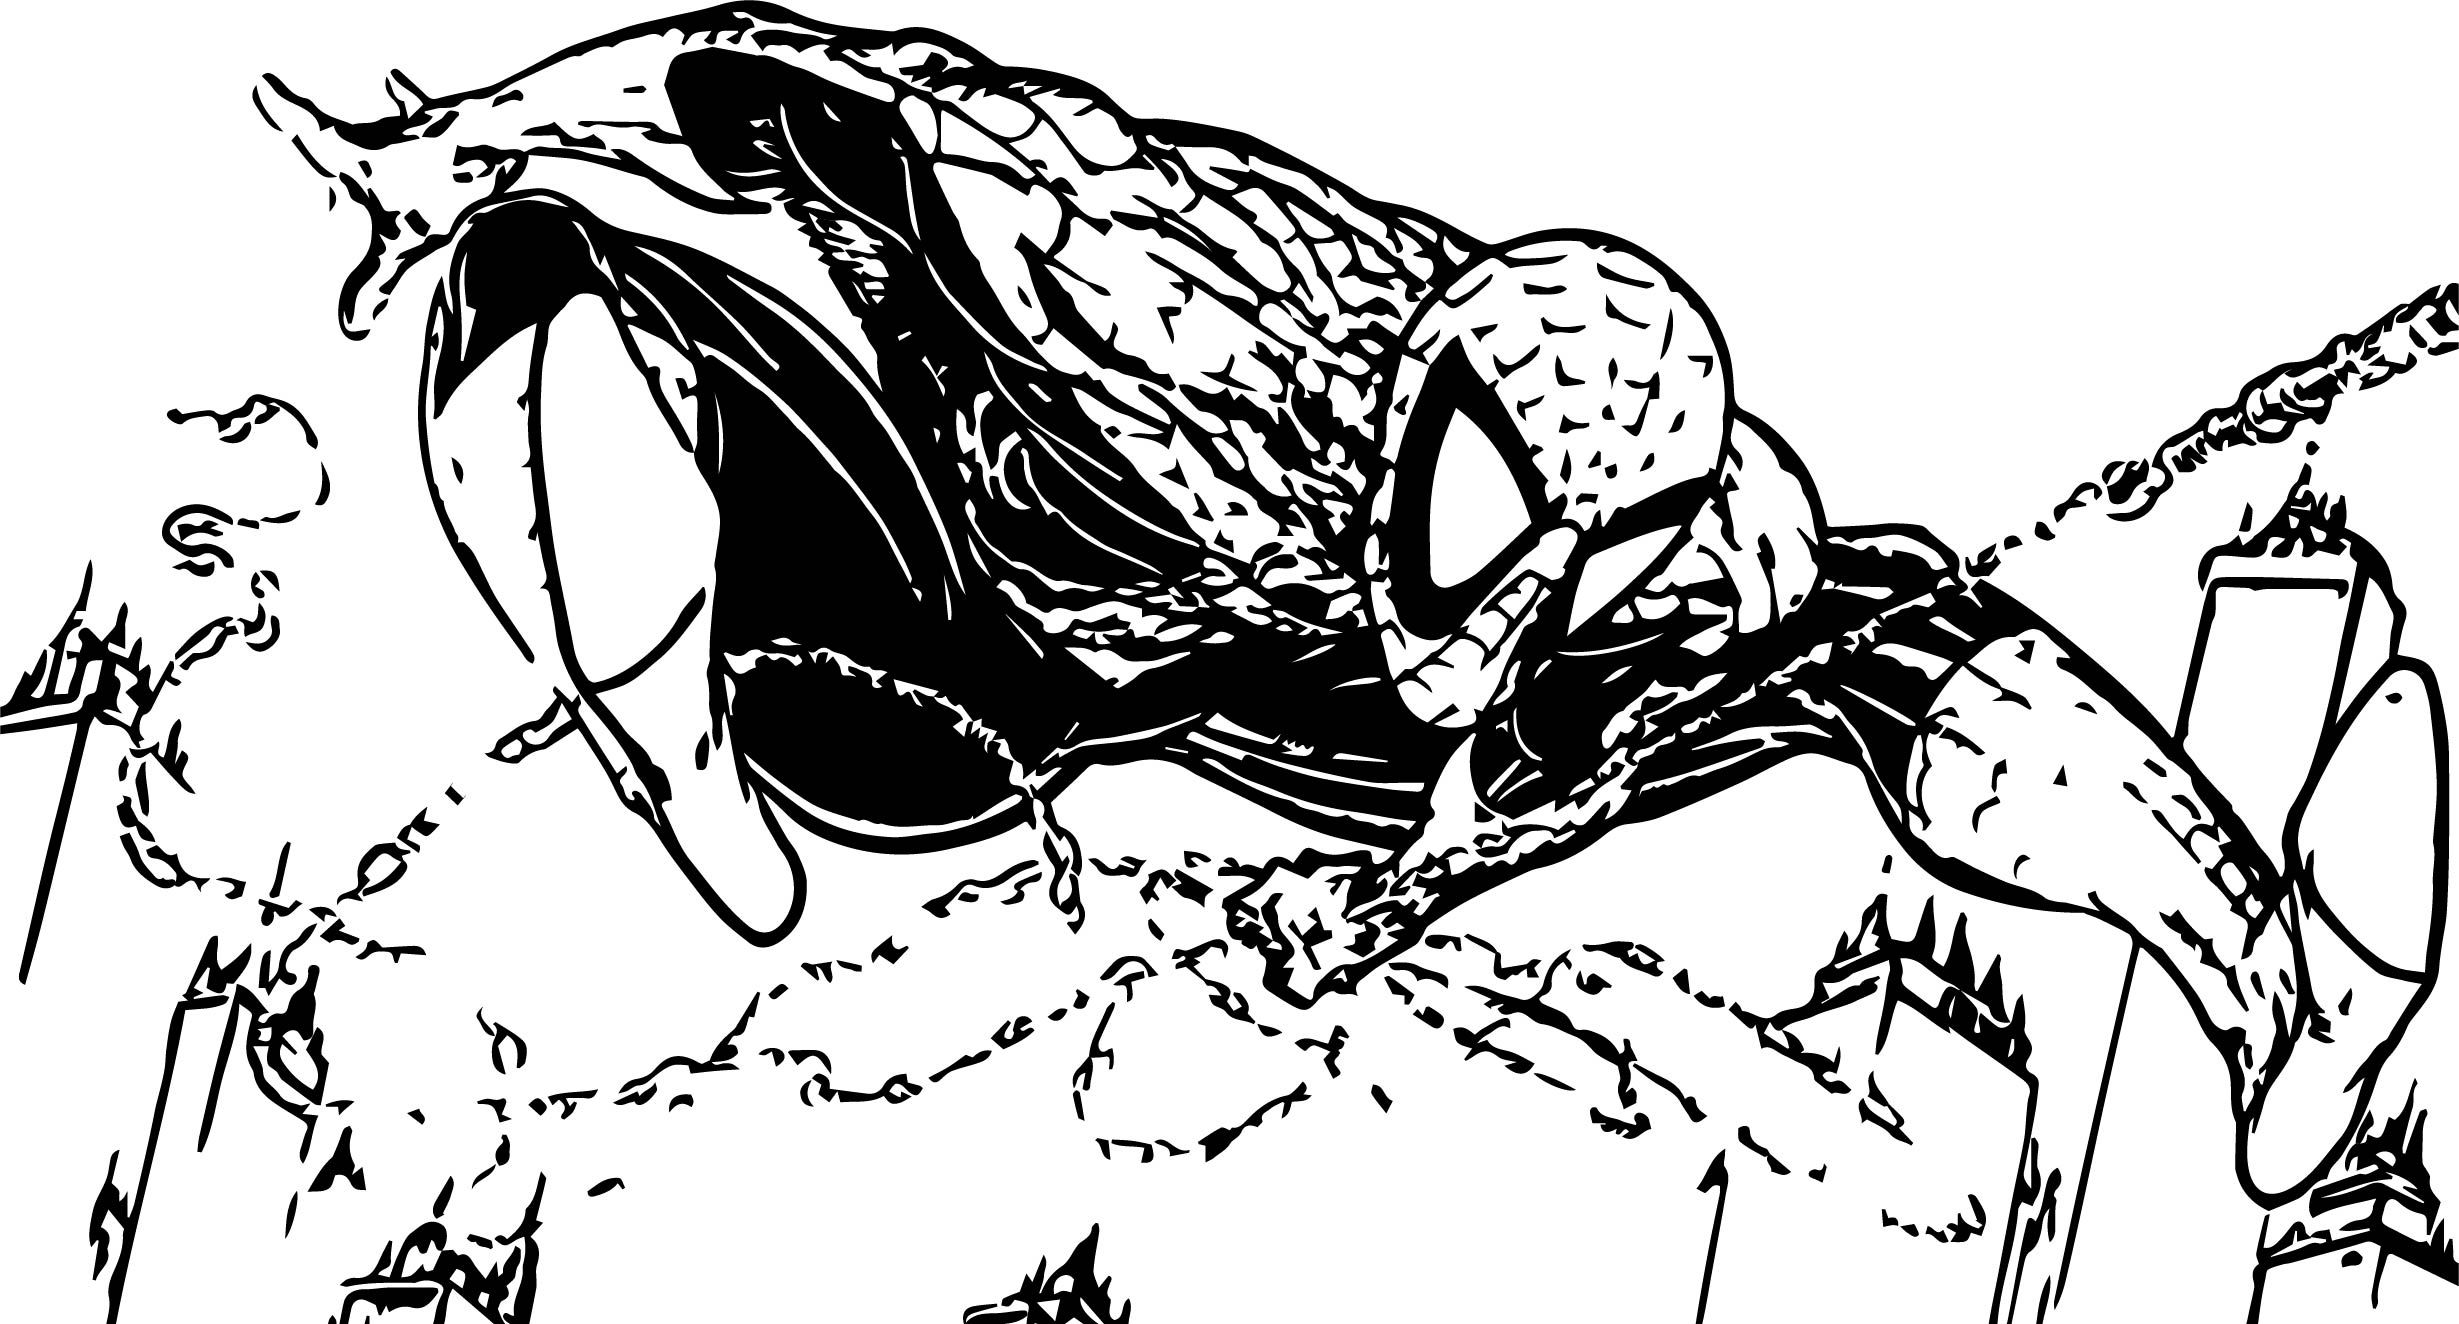 Awesome Spiderman Cartoon Full Size Spider Man Coloring Page